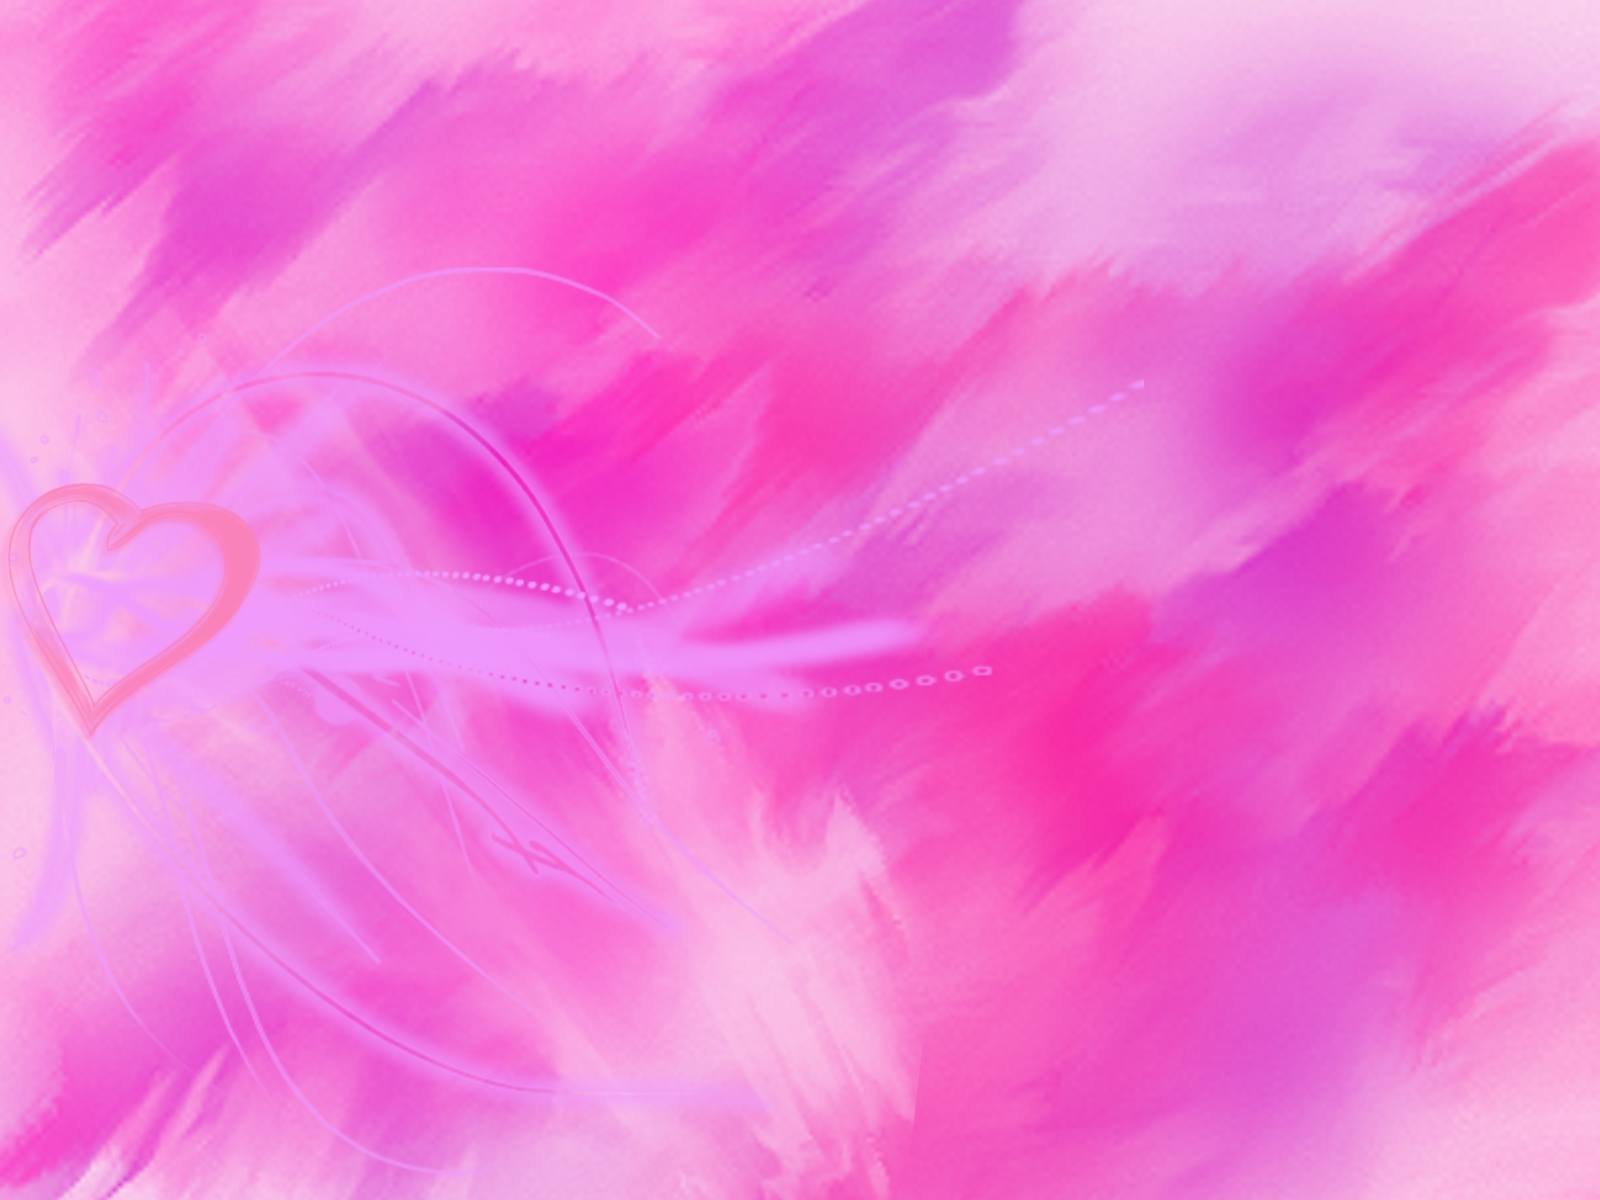 Pretty Pink Backgrounds Tumblr   Viewing Gallery 1600x1200